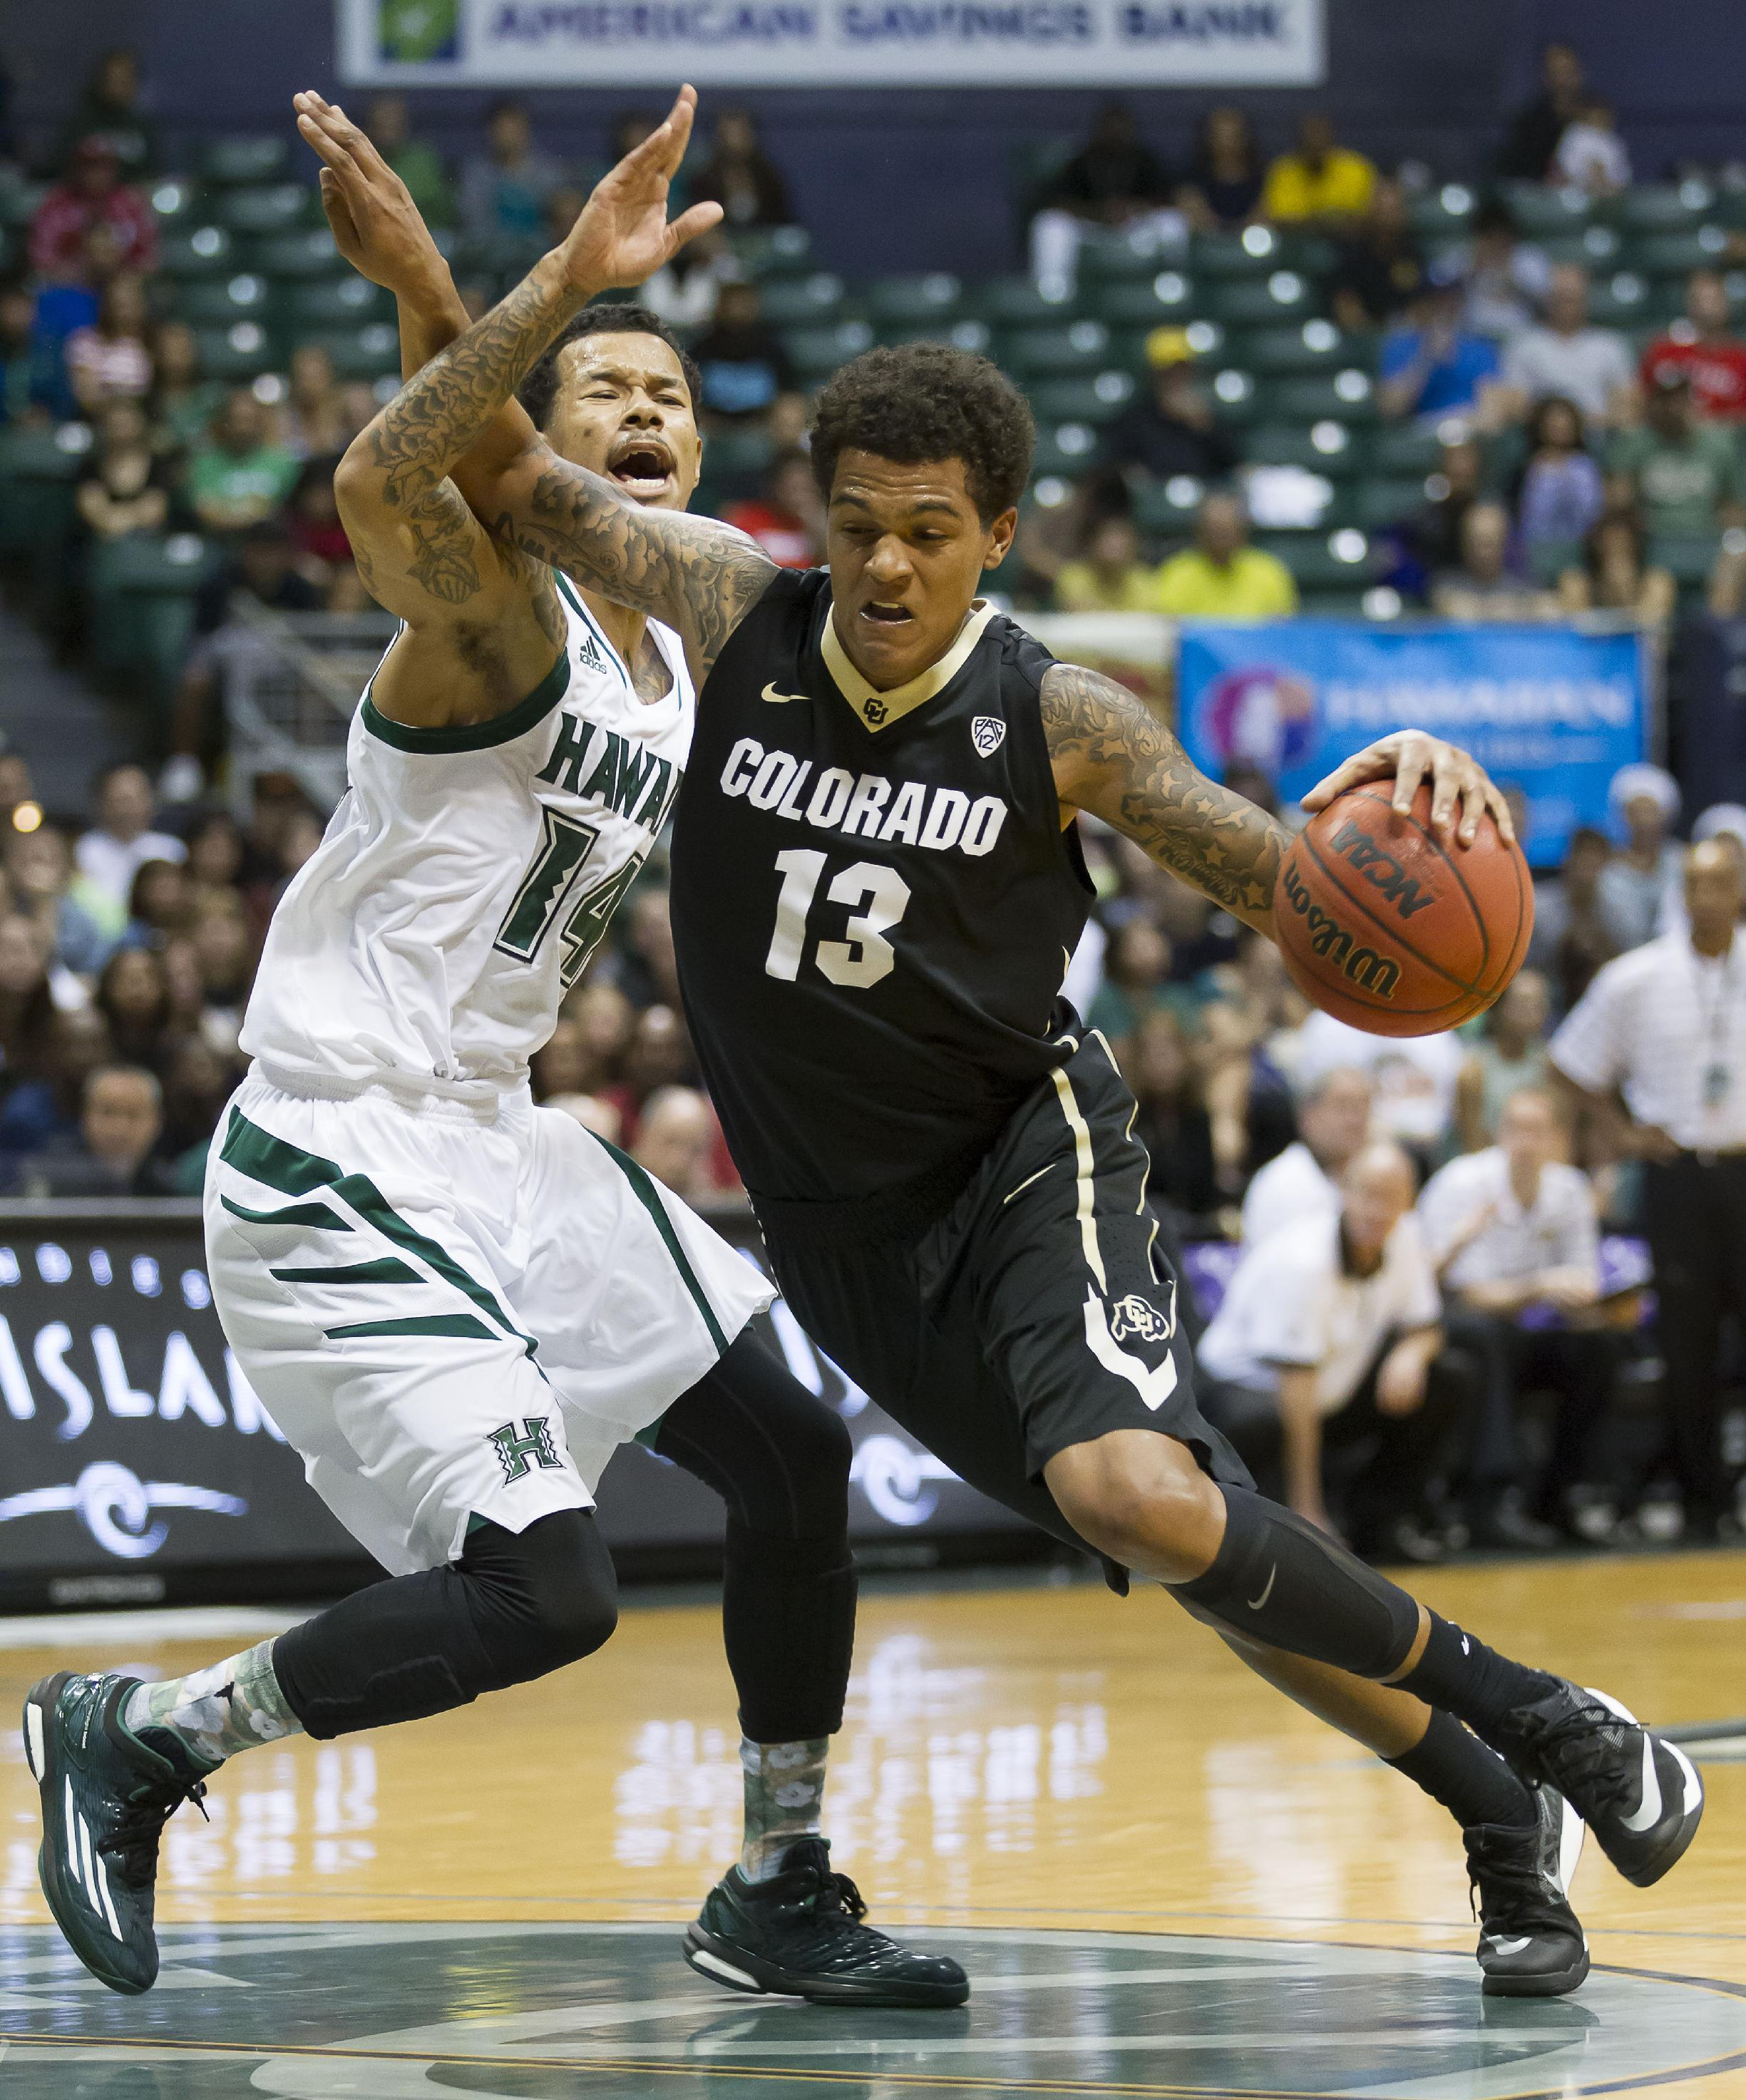 Hawaii rallies to beat Colorado for 3rd place